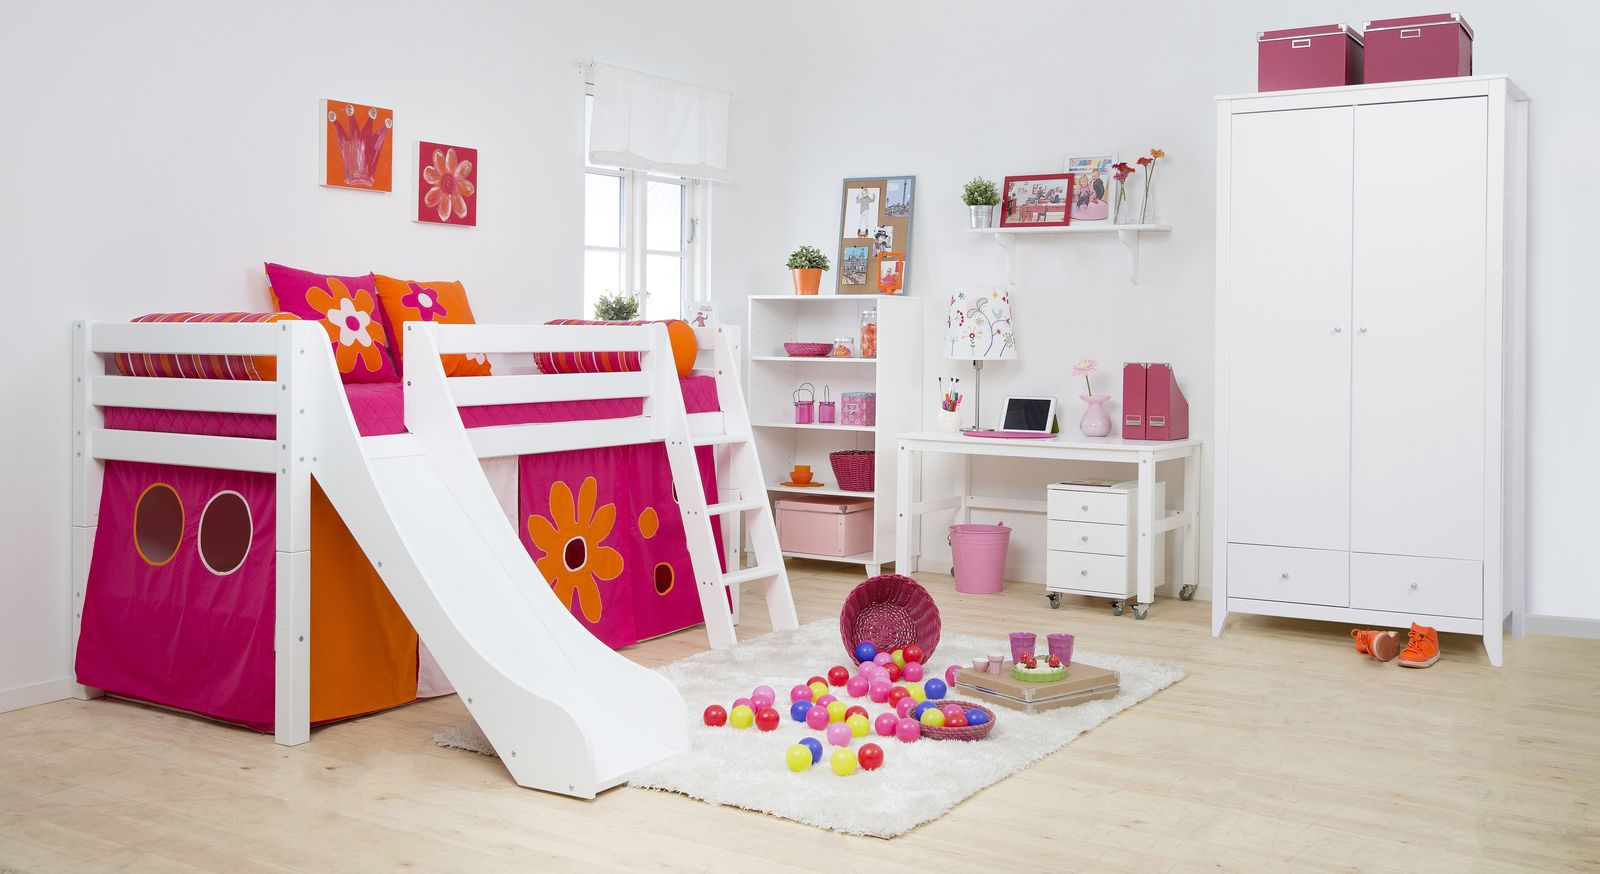 kinderzimmer komplett mit rutschbett aus kiefer blumenm dchen. Black Bedroom Furniture Sets. Home Design Ideas